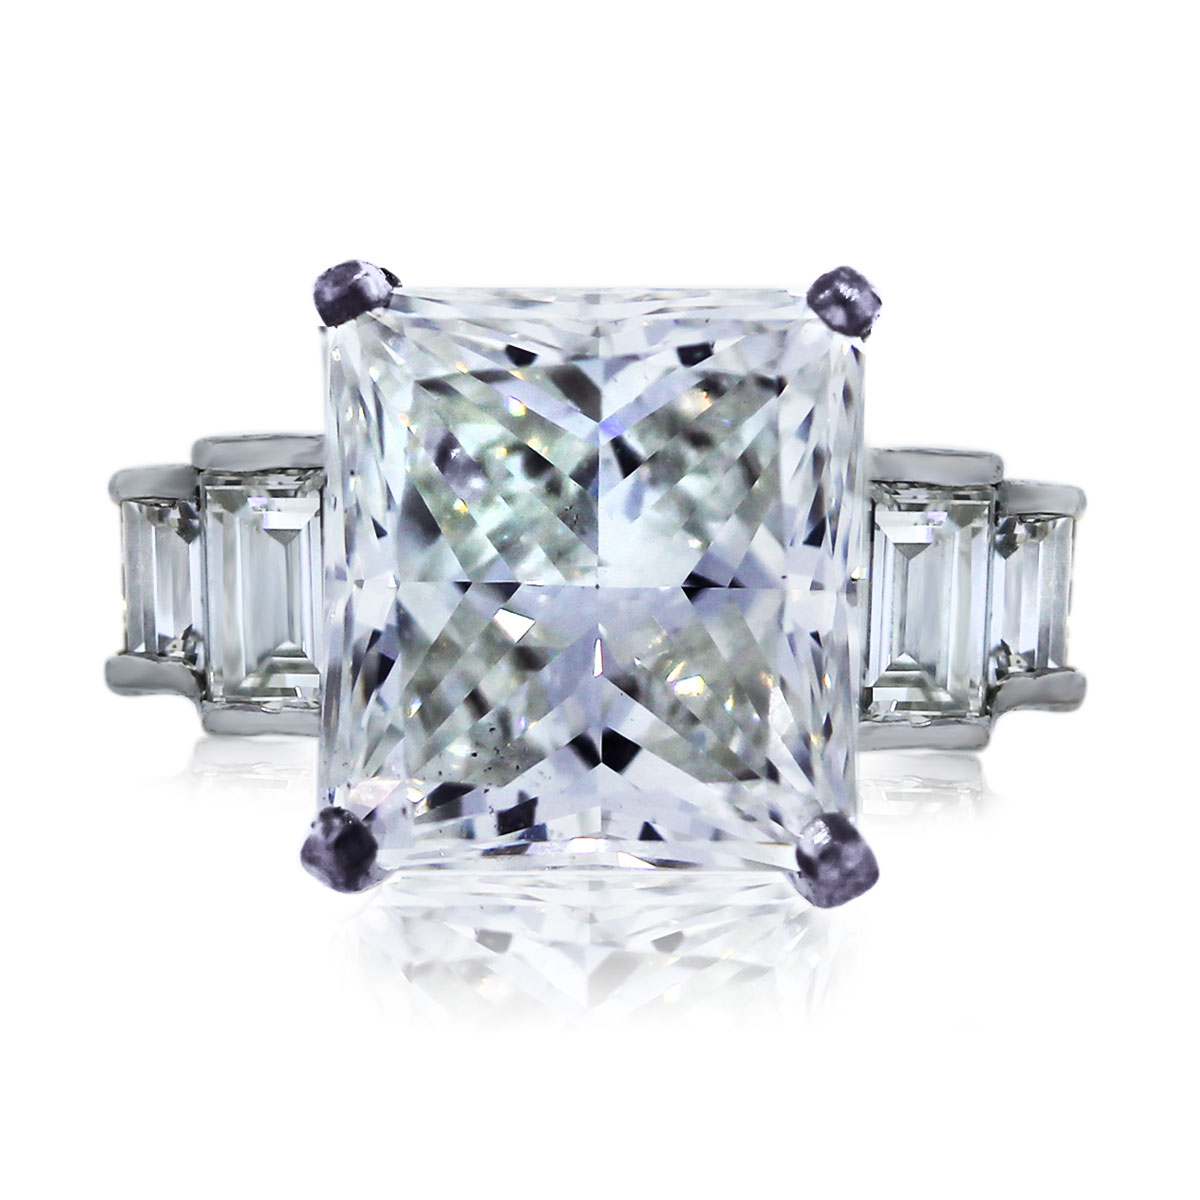 Check Out This Stunning 605ct Diamond Engagement Ring!